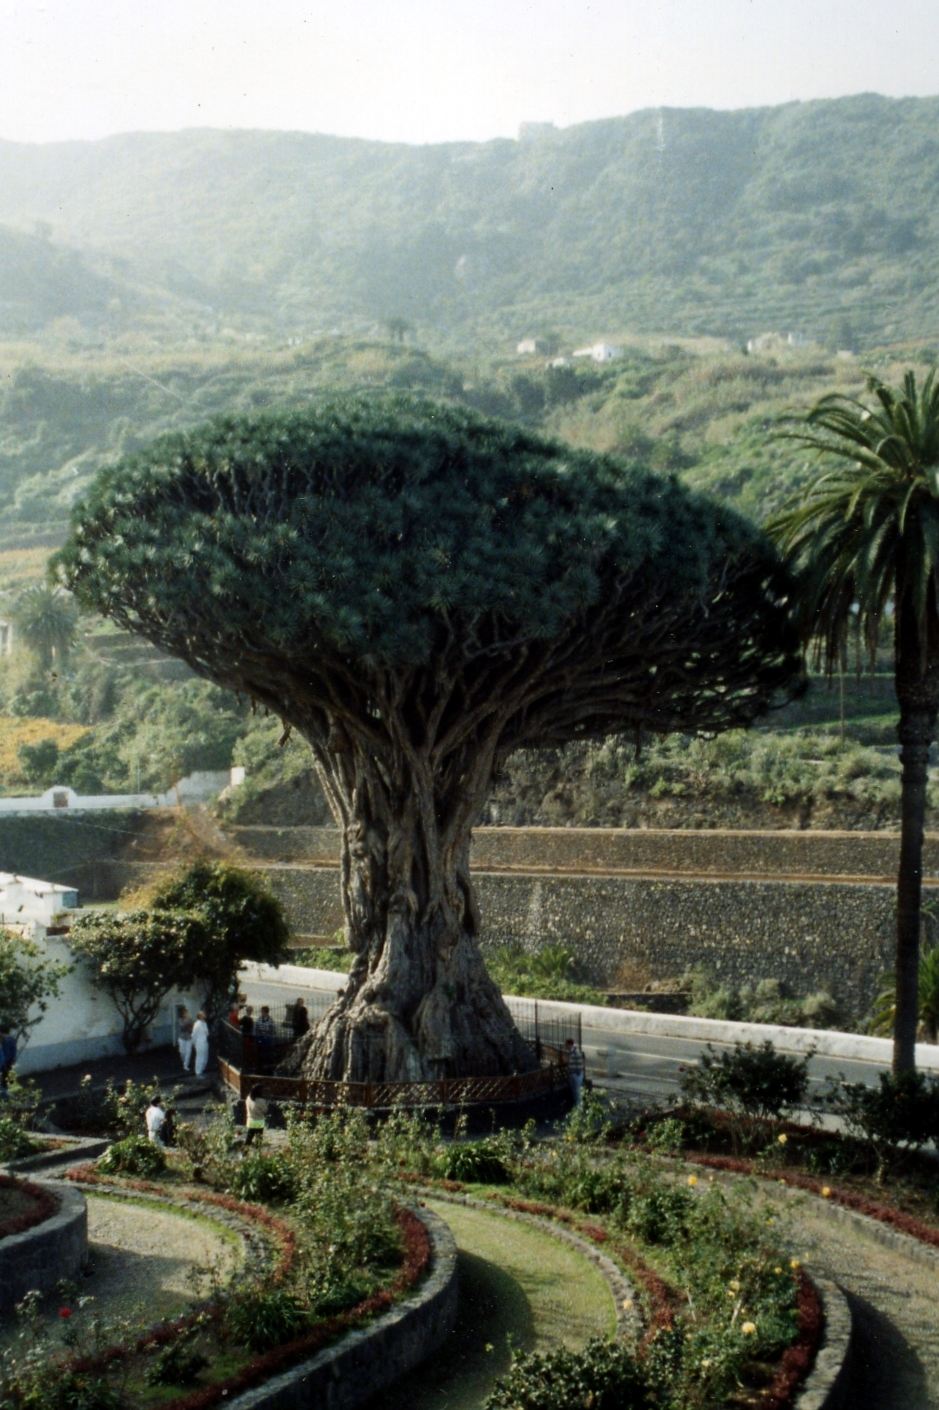 800 year old Dragon Tree in 1980s